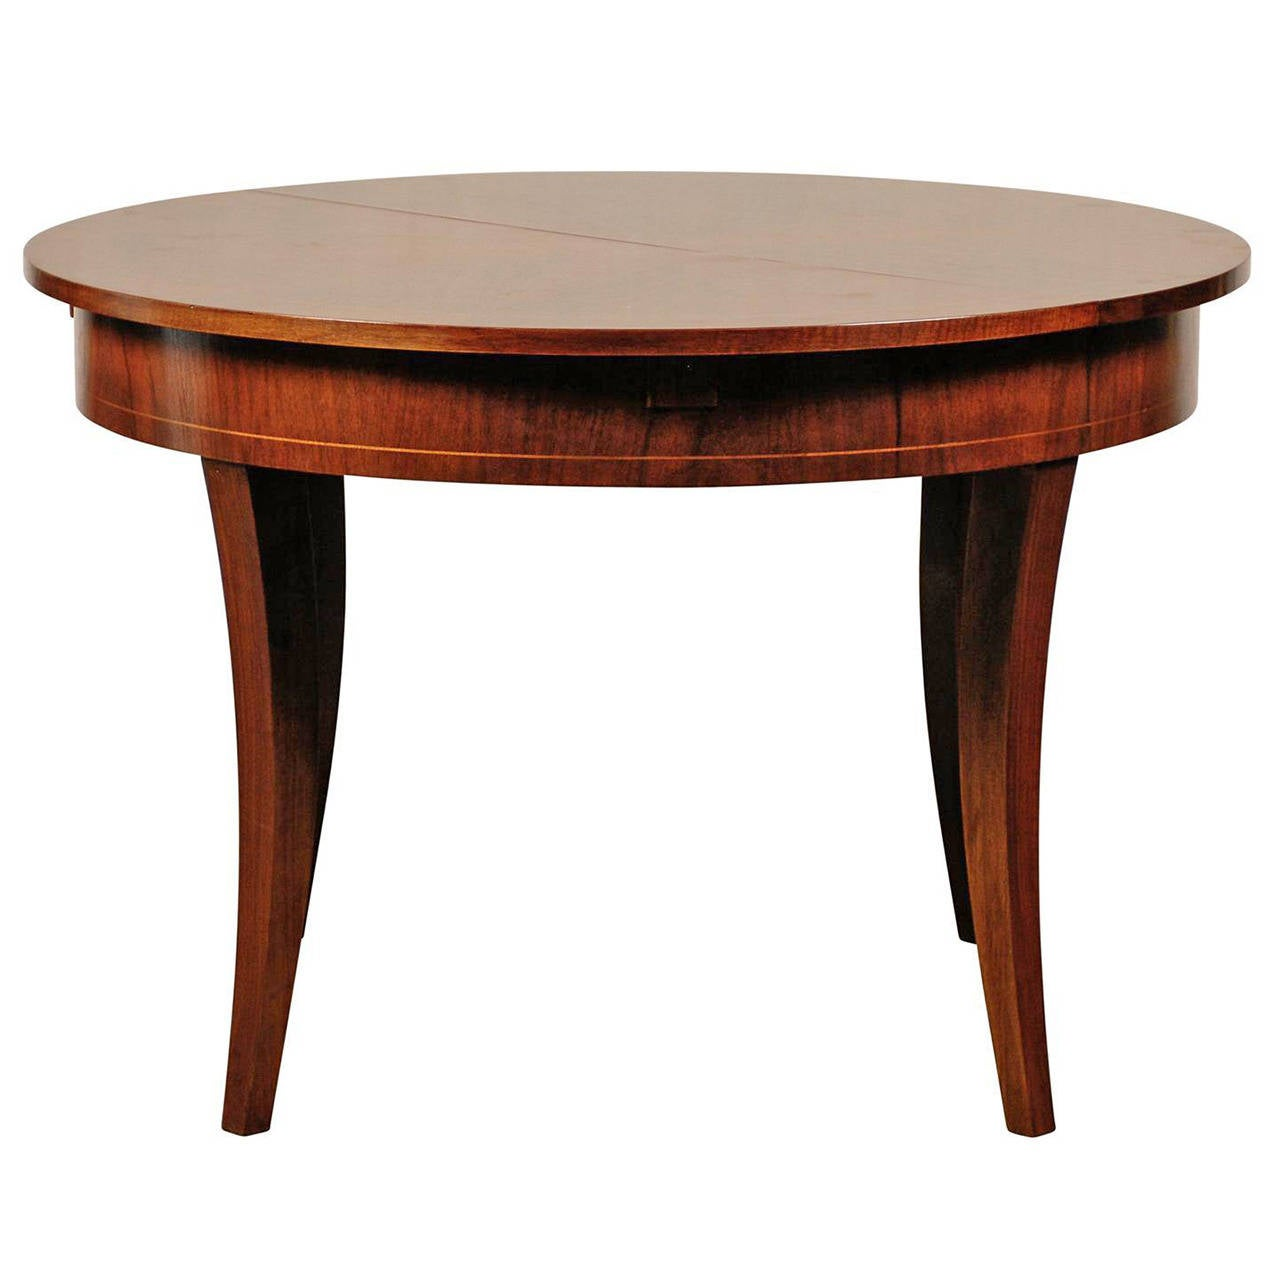 20th century austrian style round walnut extension dining for Round extension dining table